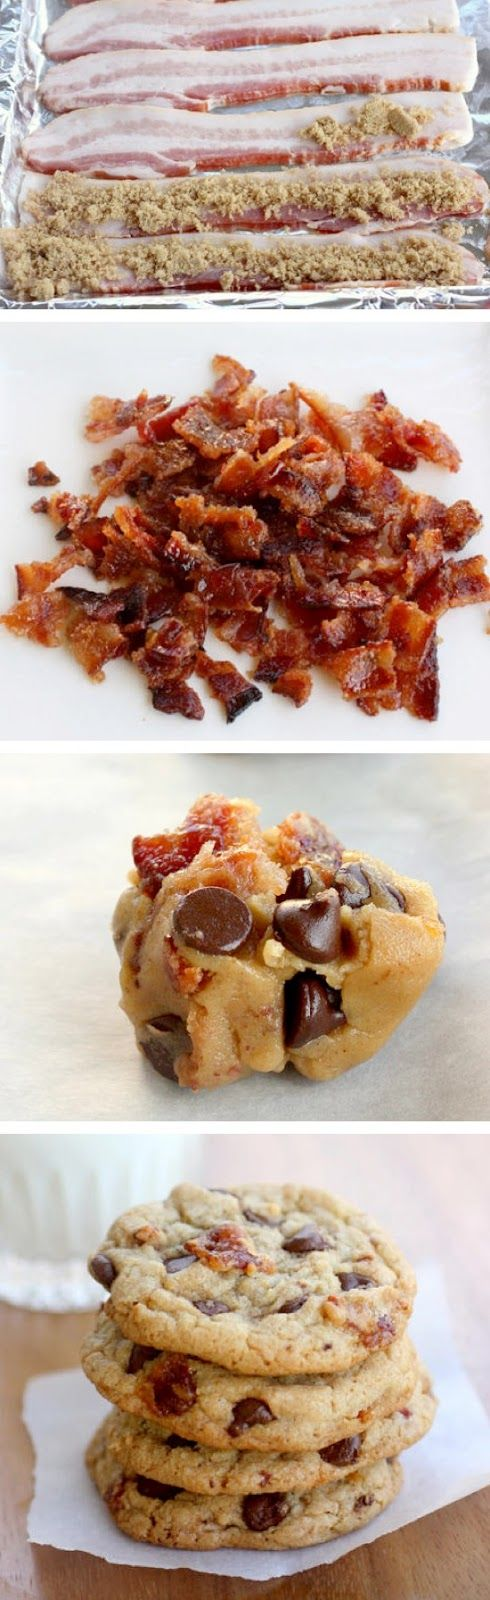 Candied Bacon Chocolate Chip Cookies. You can make these with the mini chocolate chips